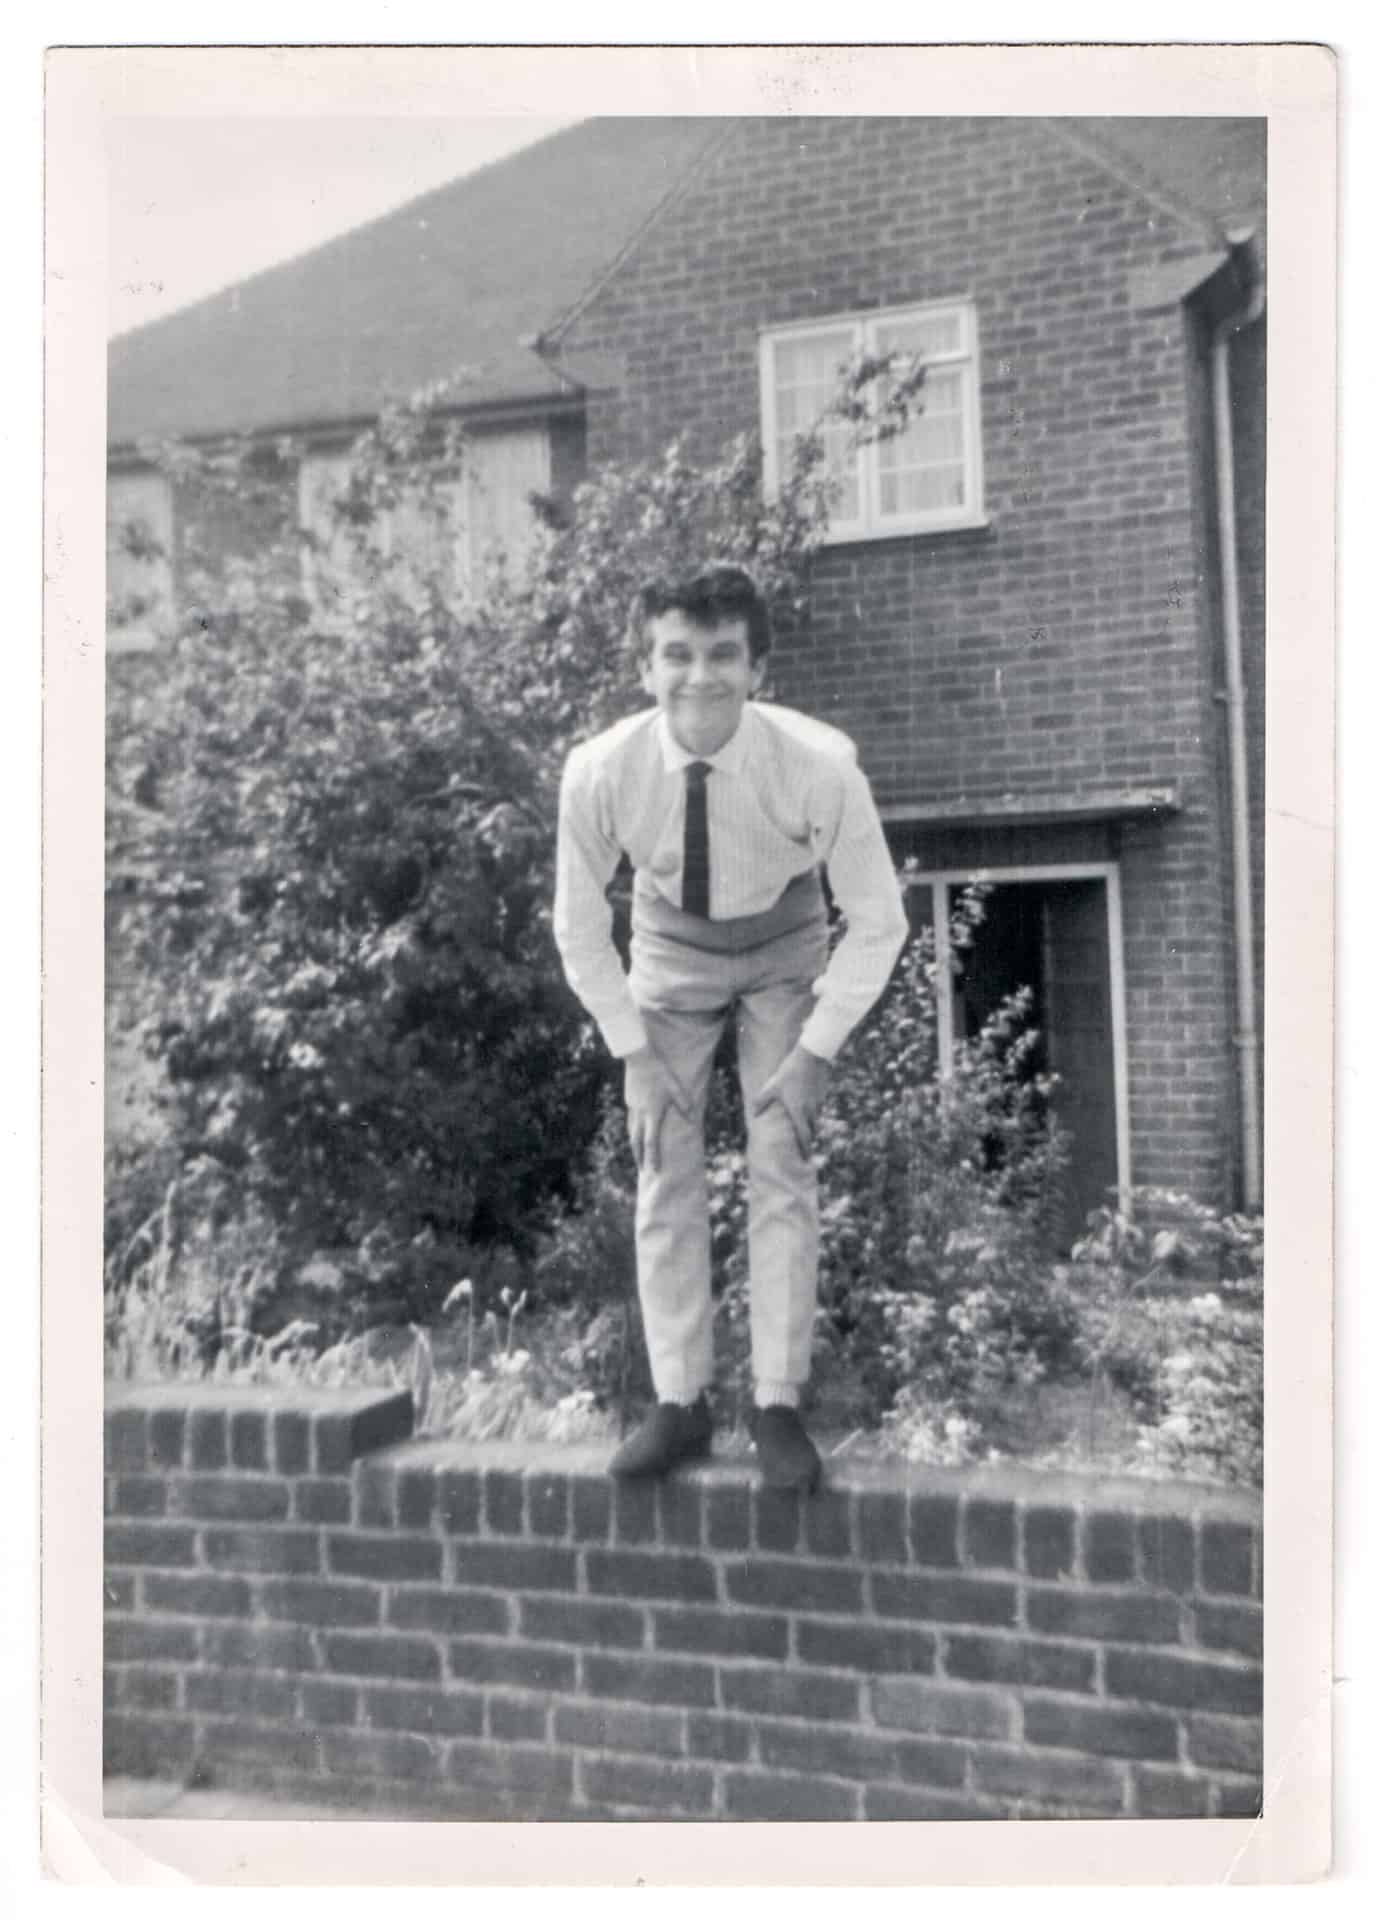 Alan pictured about 1965